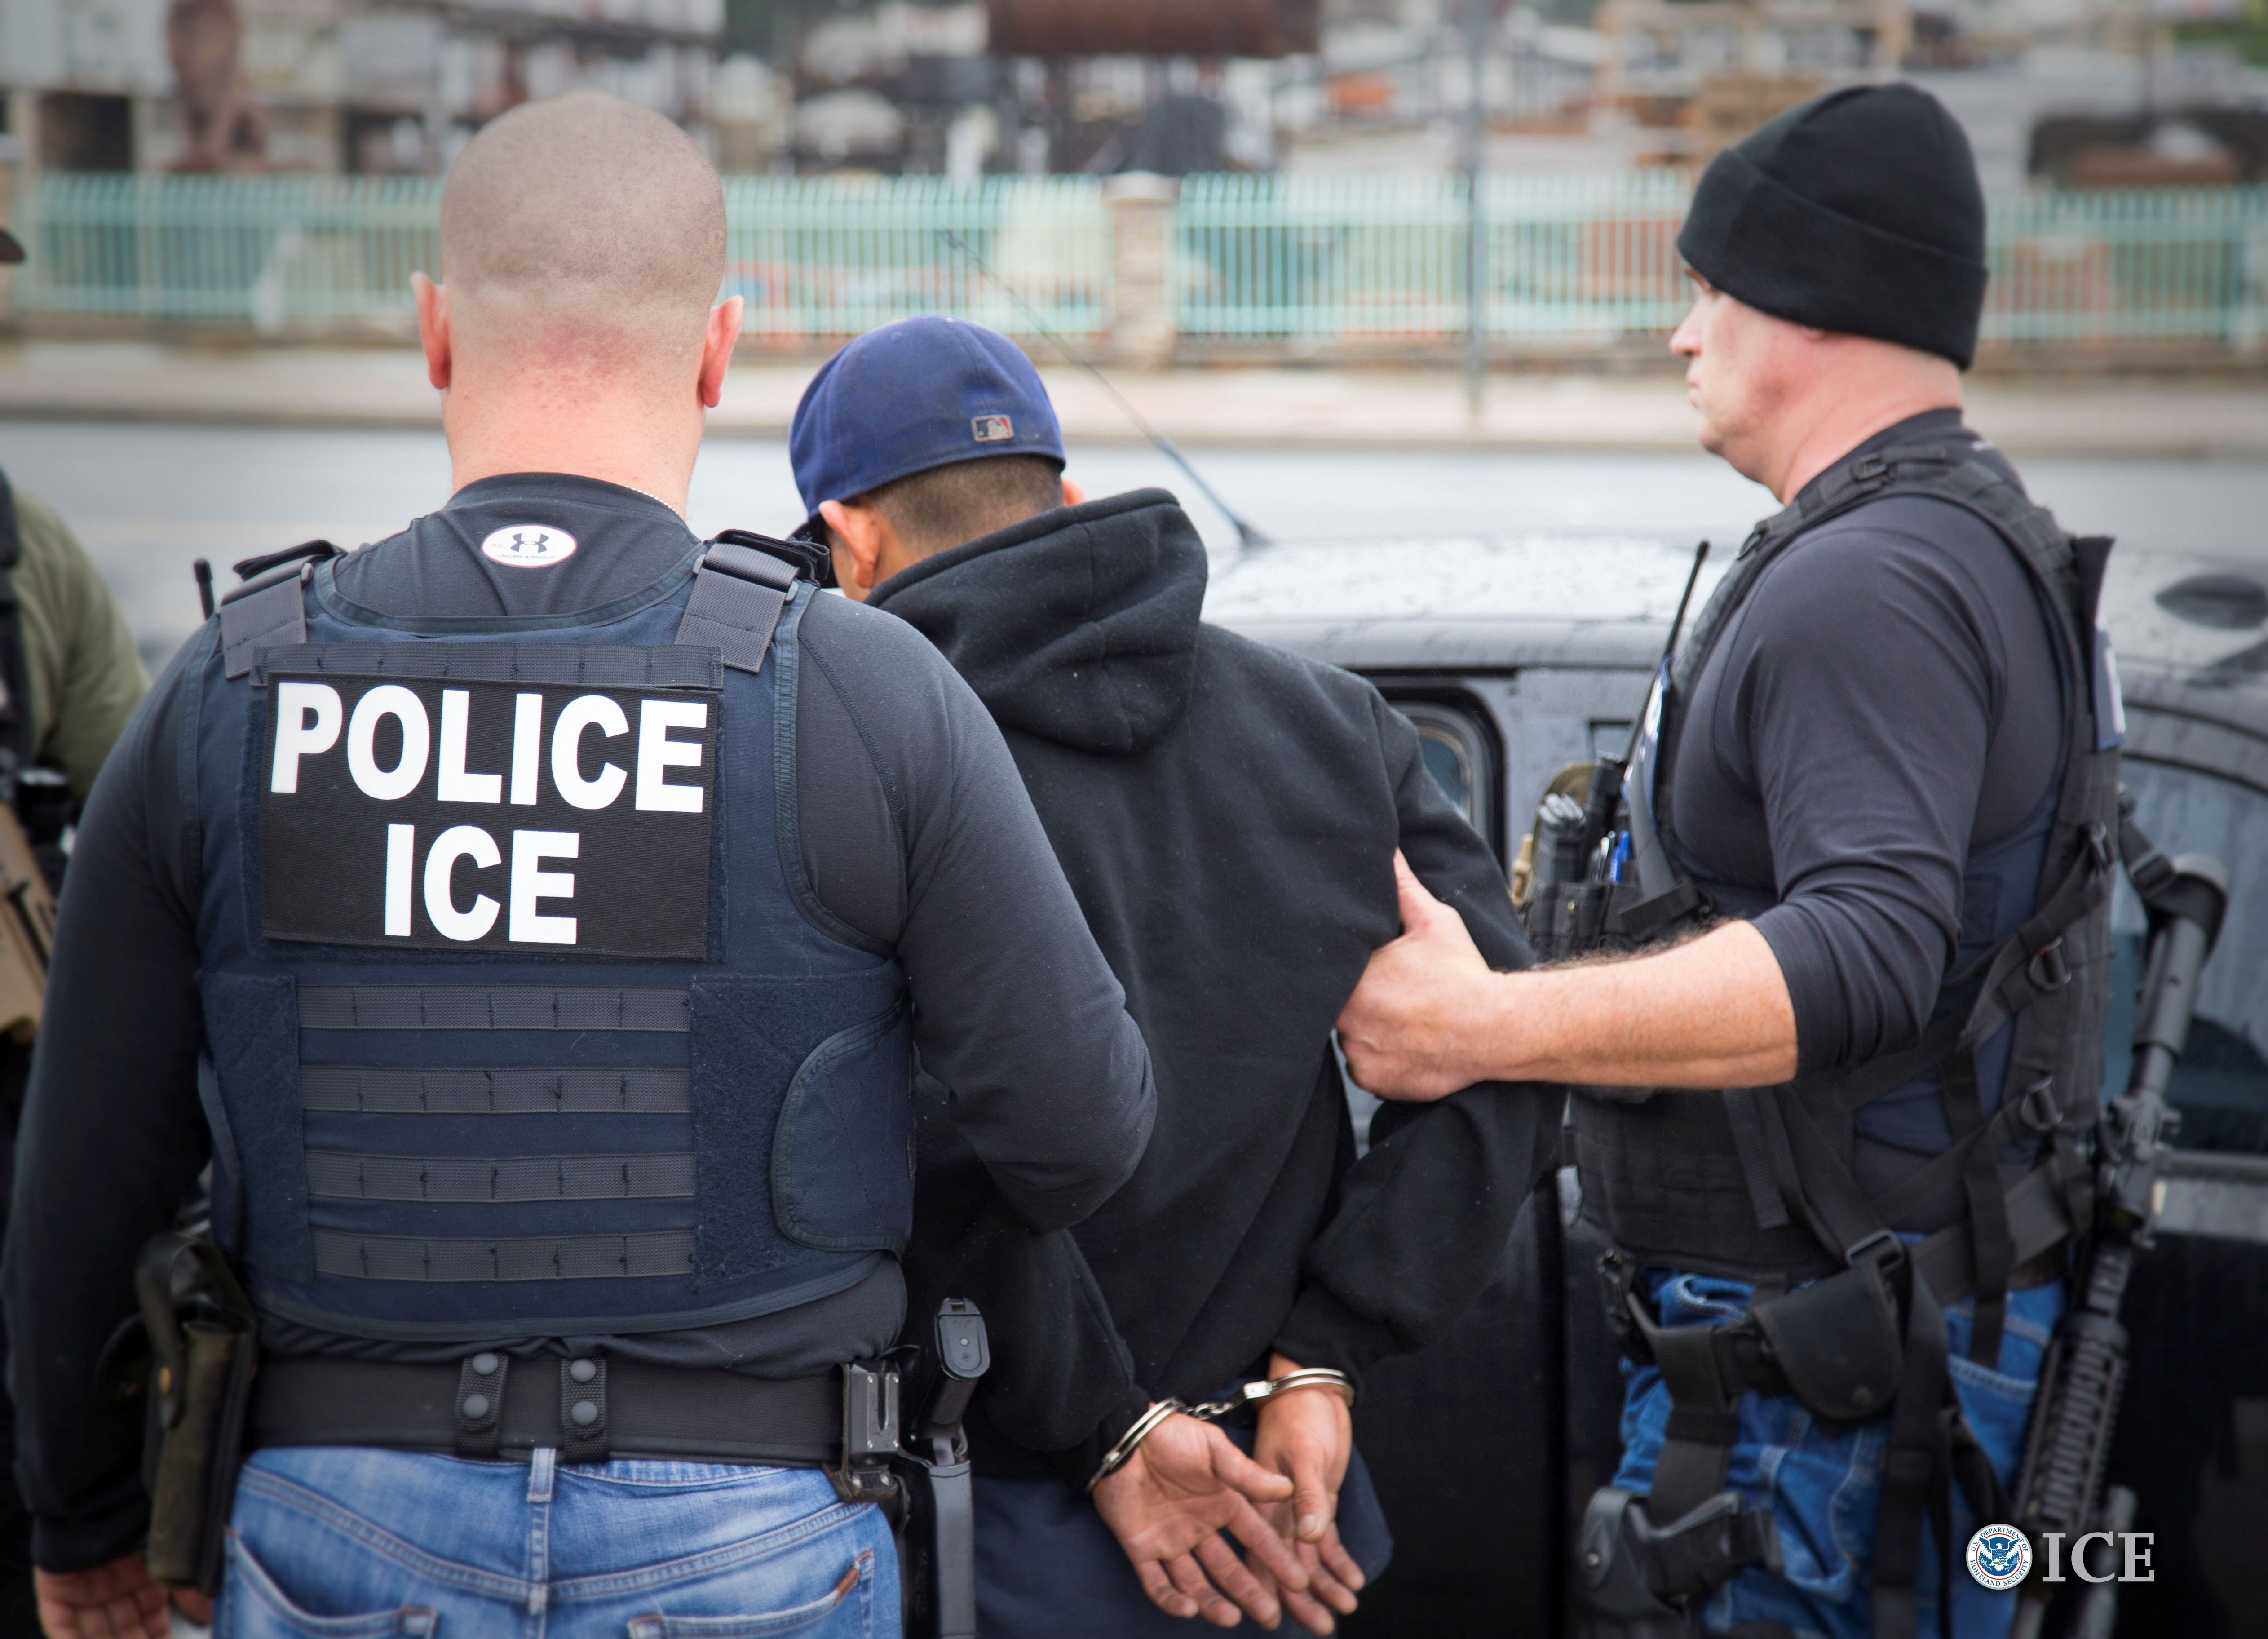 """Two men with vests that read """"POLICE ICE"""" lead away a man in handcuffs"""